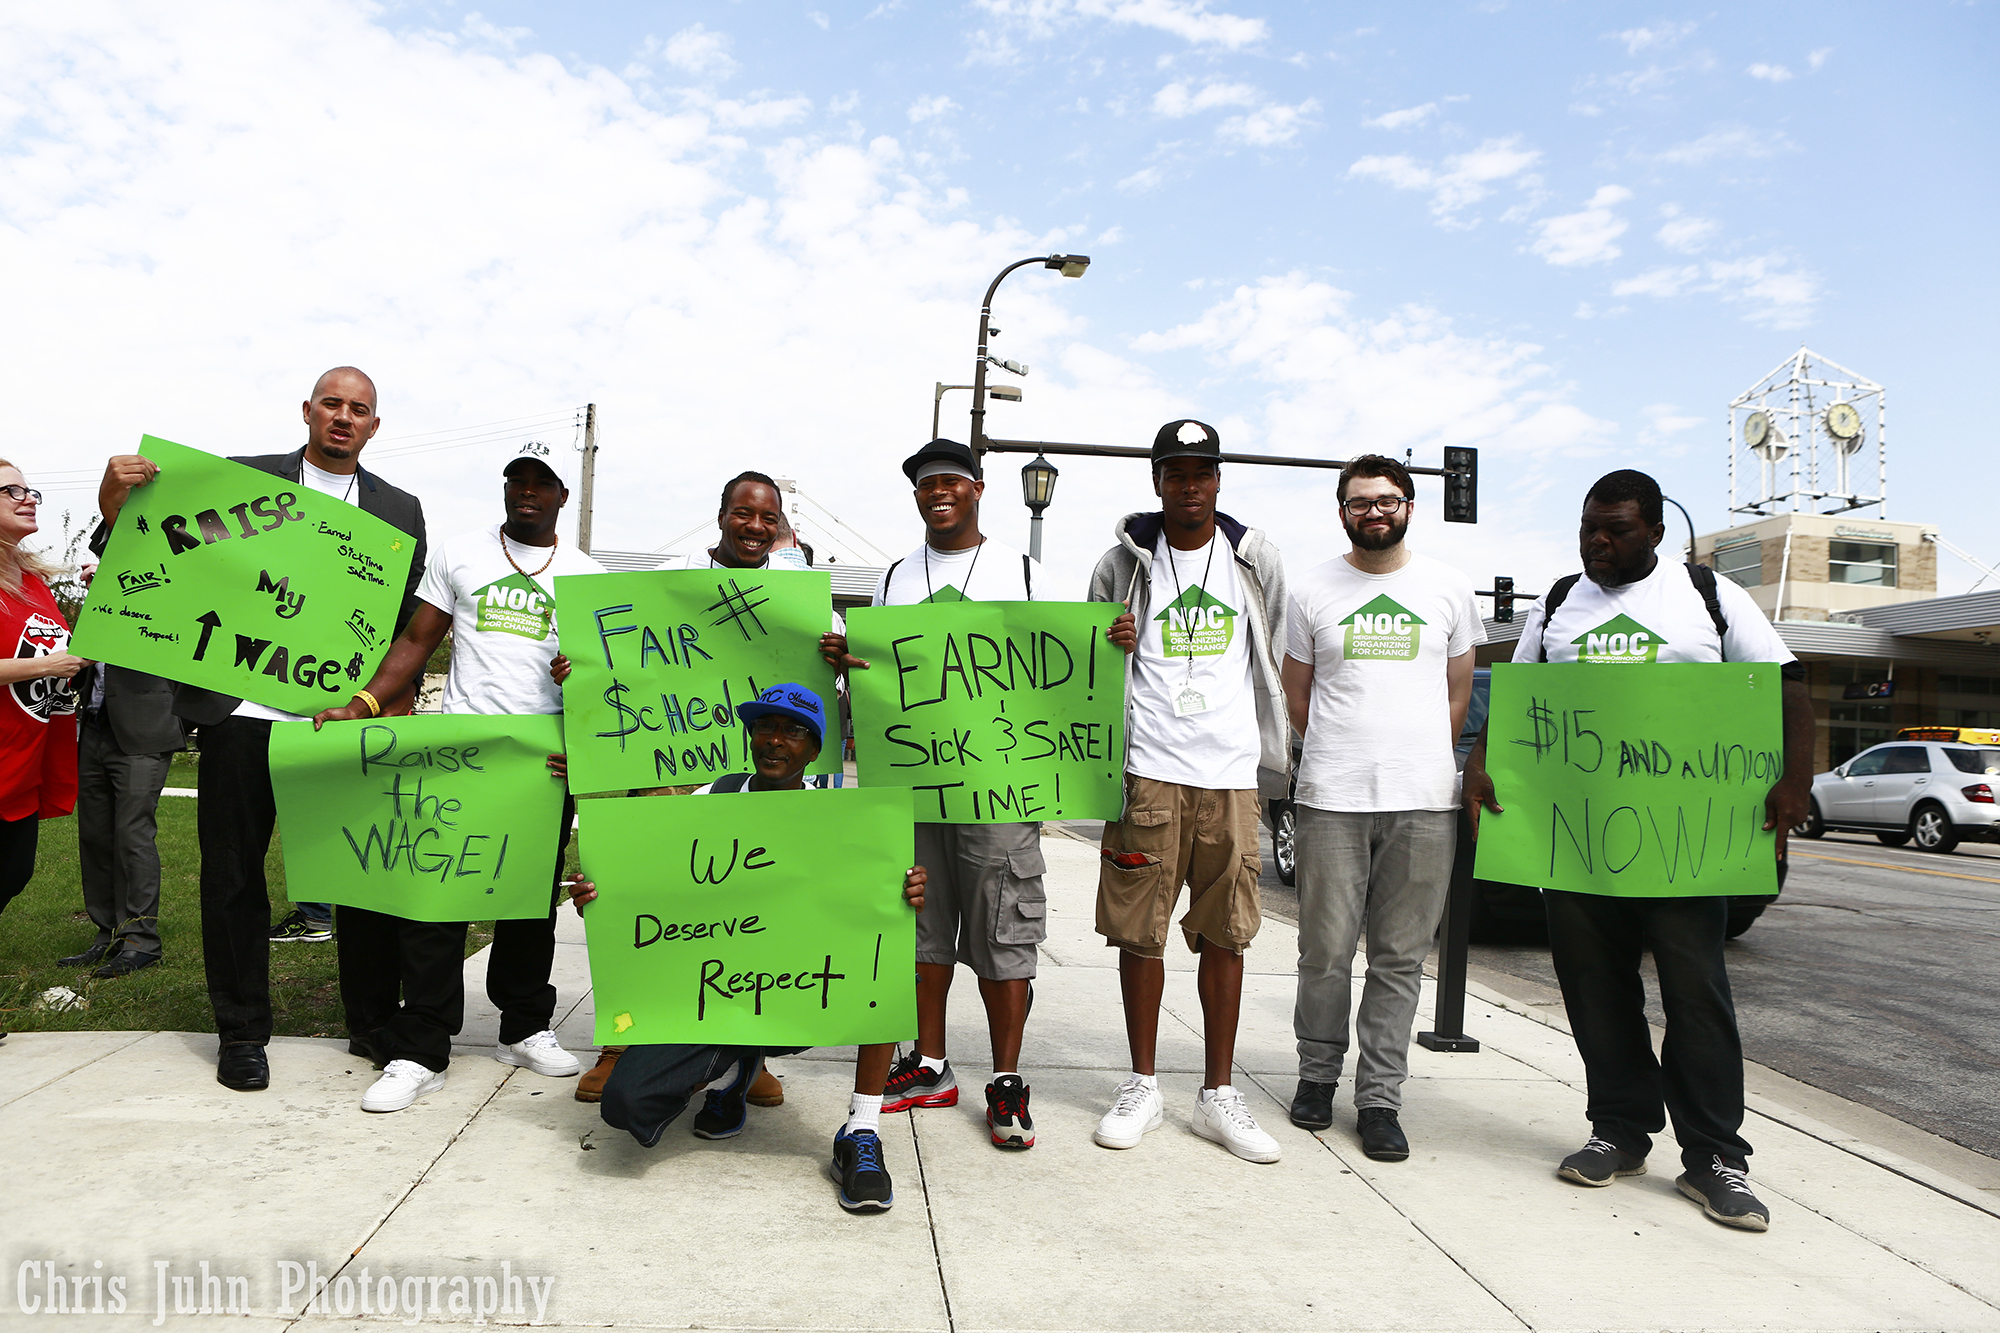 Fast food workers participated in a minimum wage protest on Sept. 4 in Uptown. (Photo: Chris Juhn/City College News)